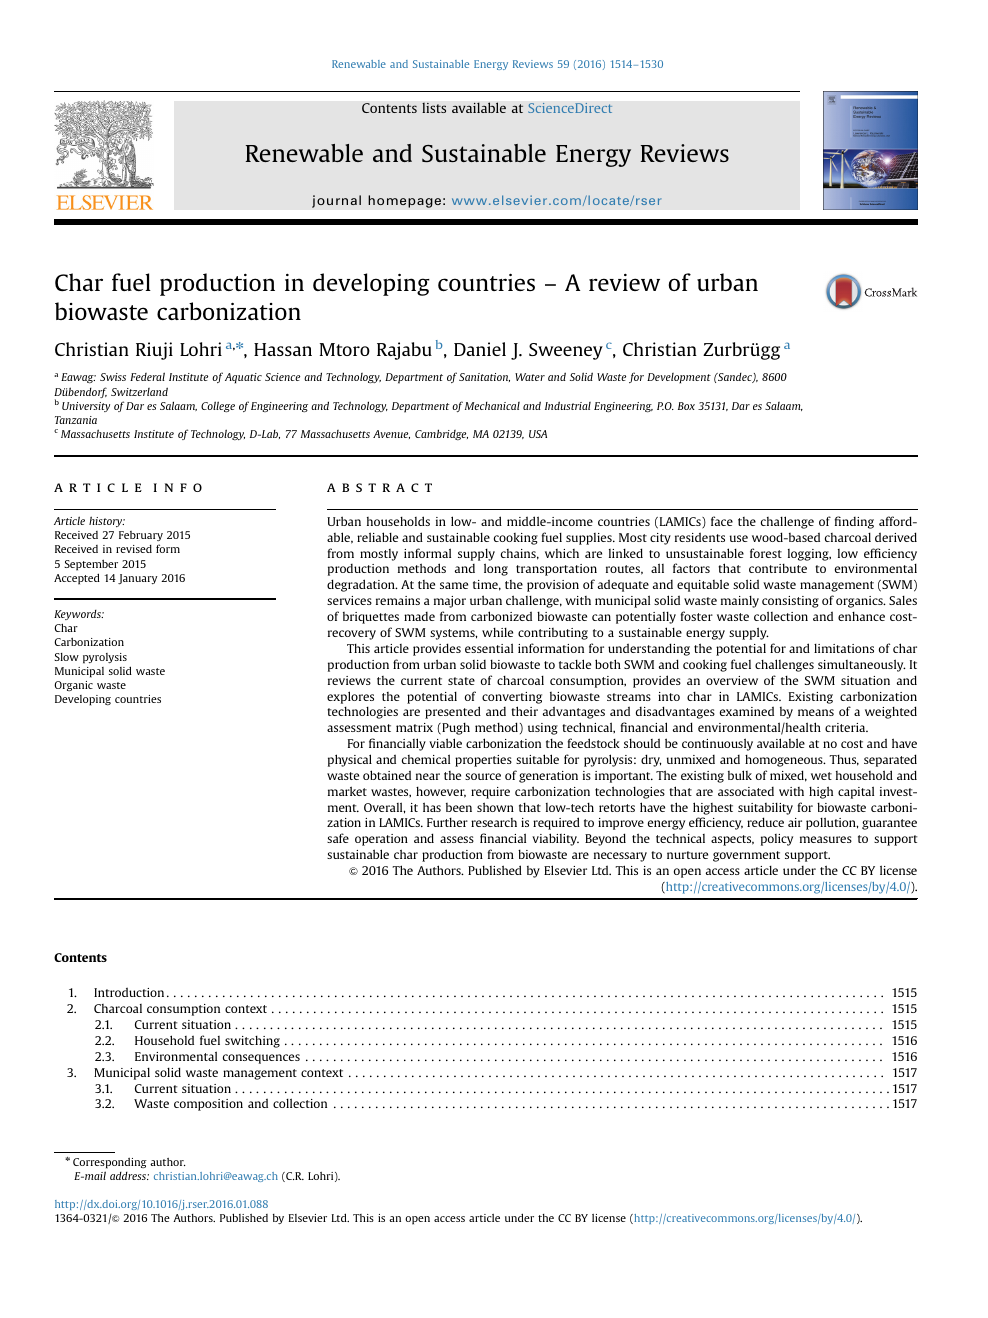 Char fuel production in developing countries – A review of